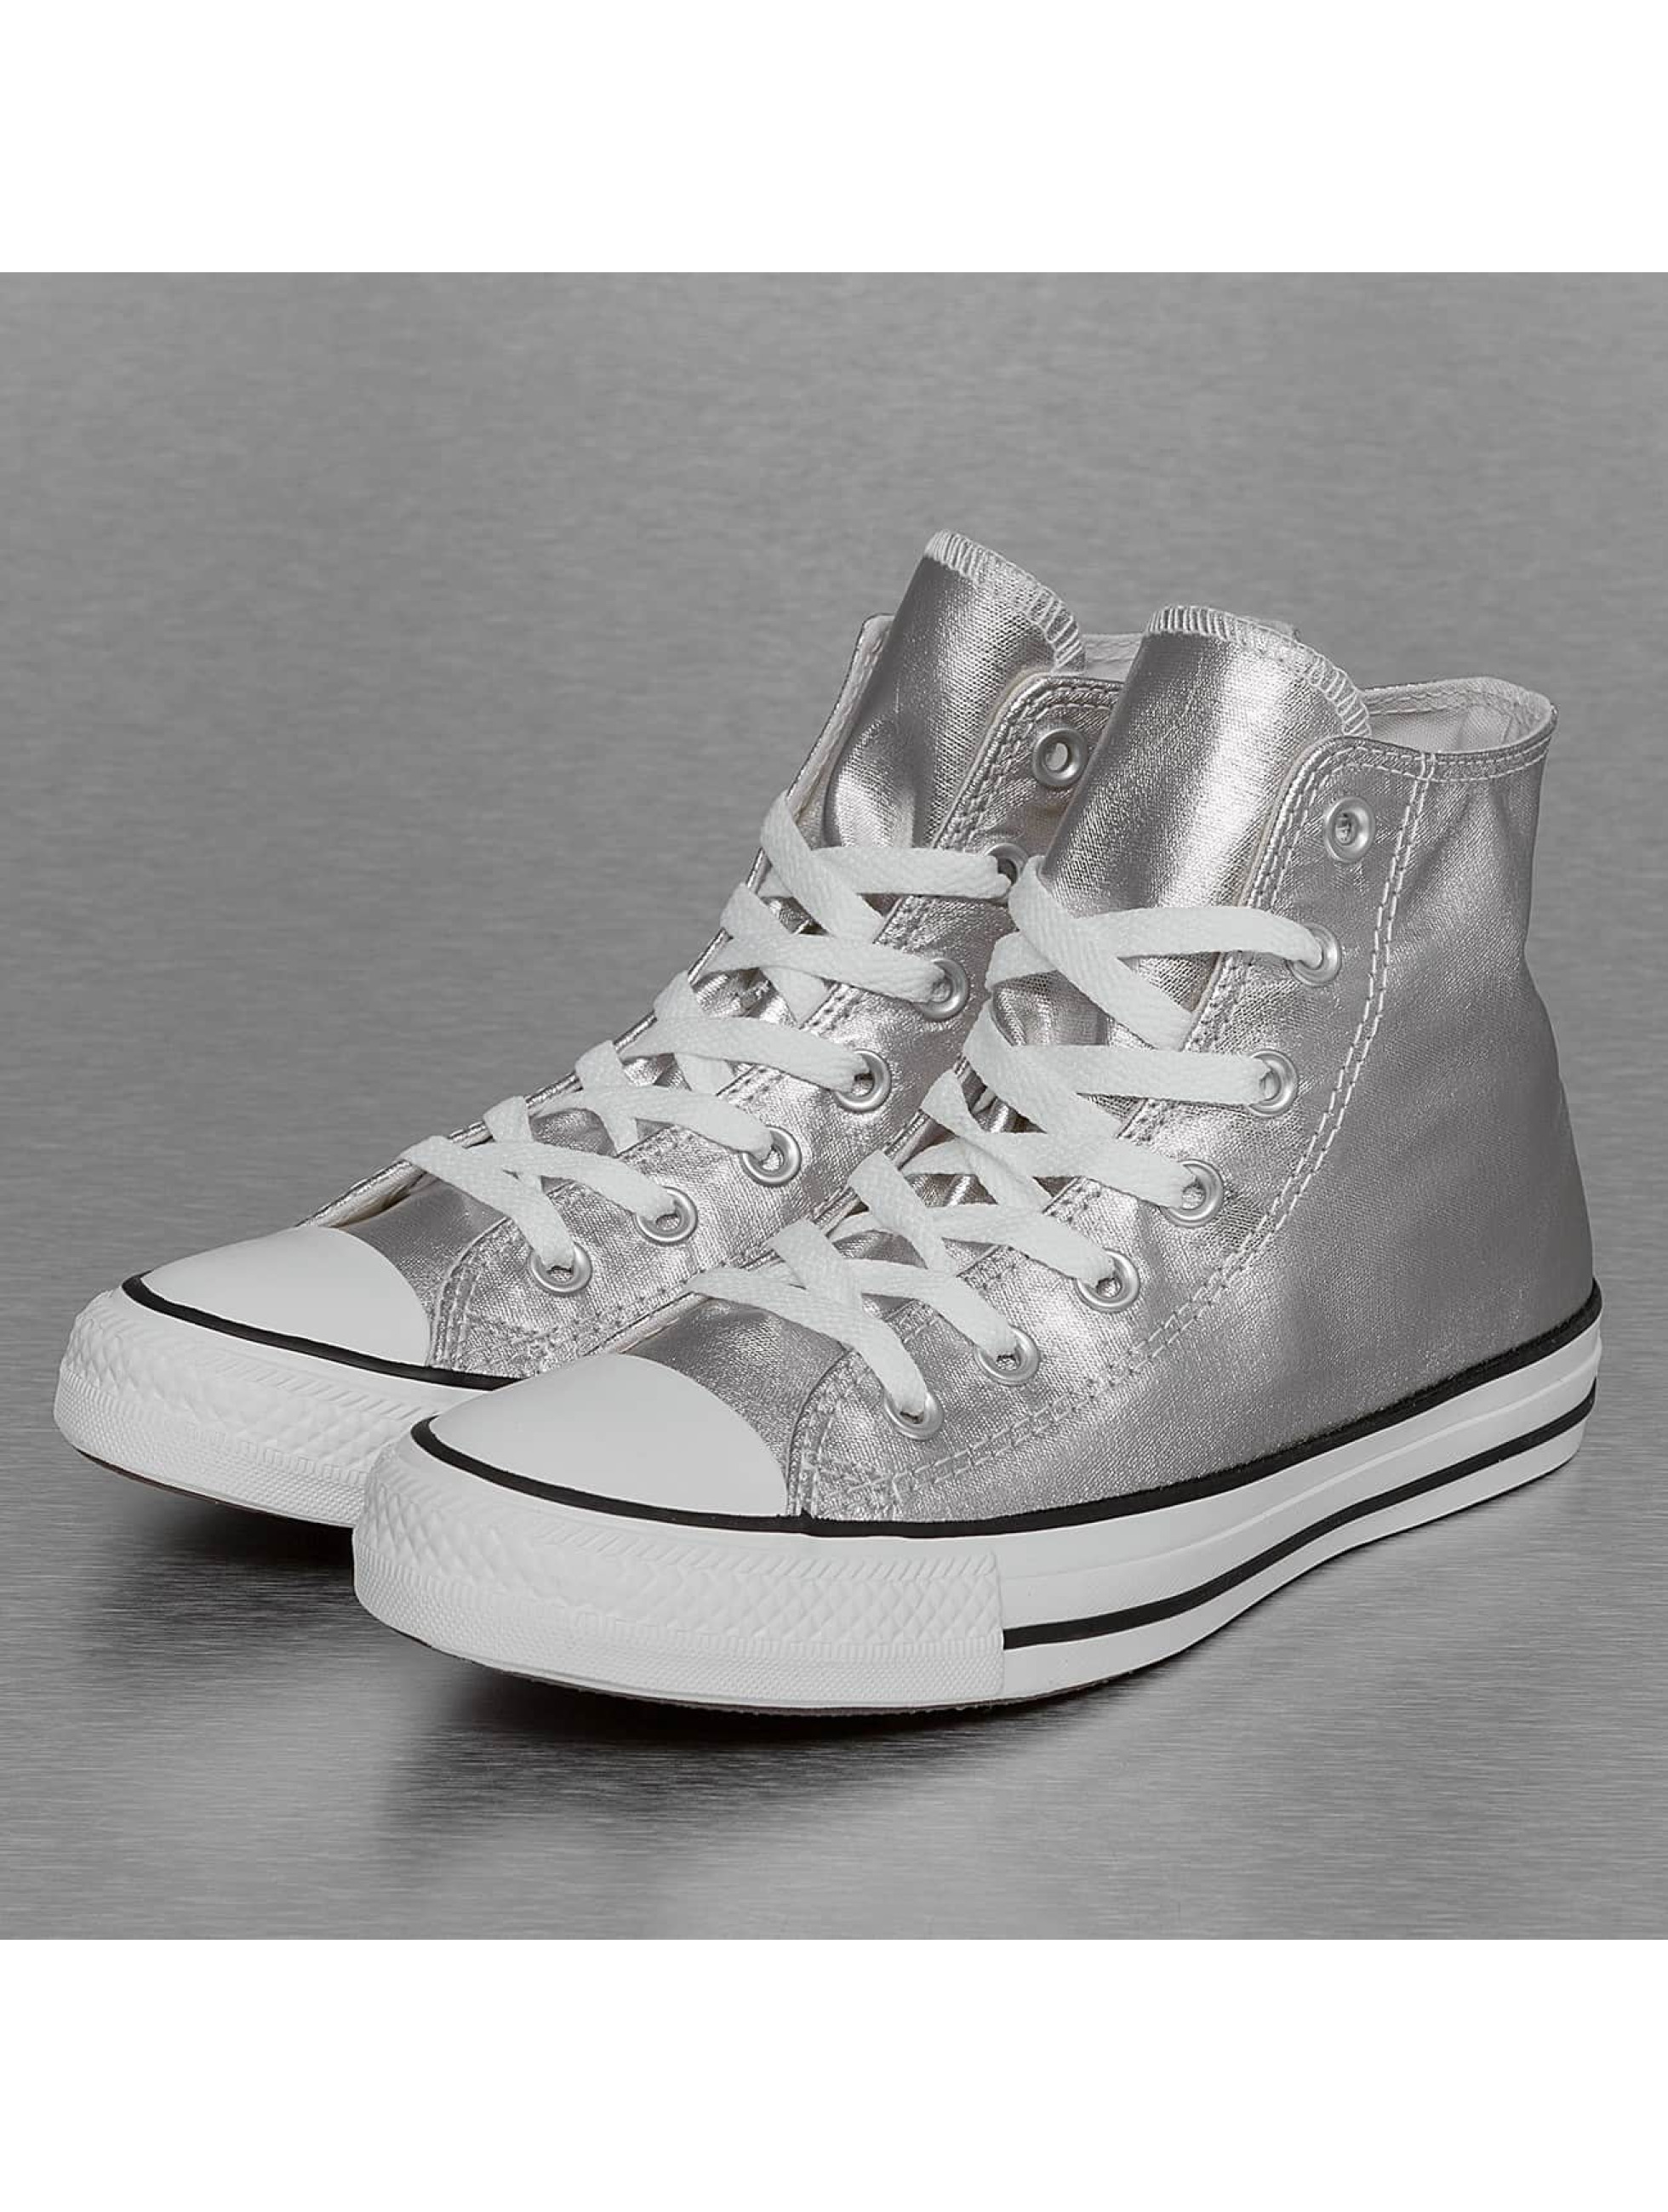 Sneaker Chuck Taylor All Star in grau